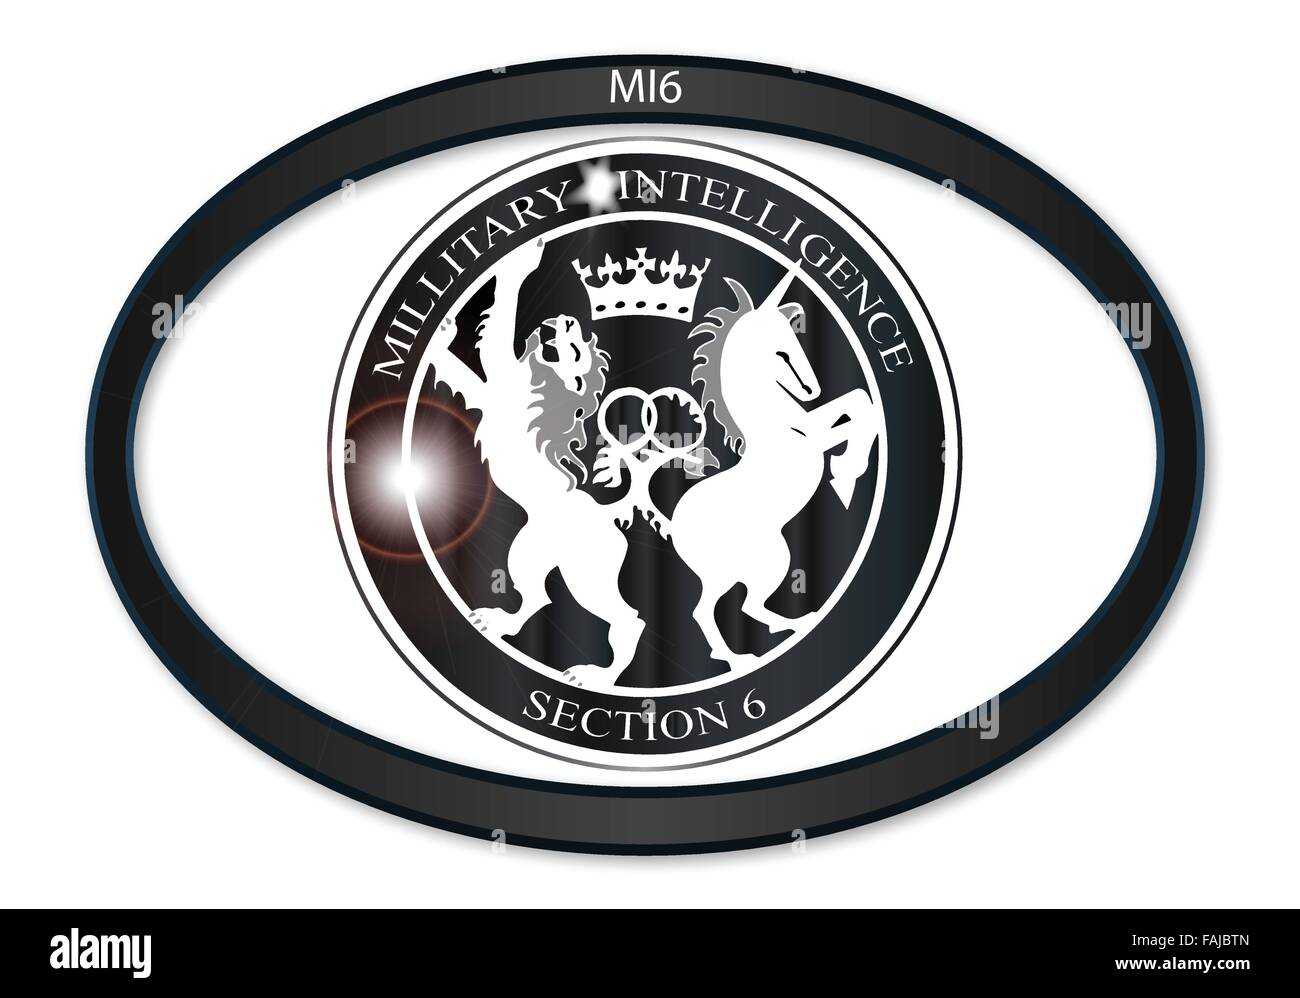 Oval Metal Button With A Depiction Of The MI6 Horses